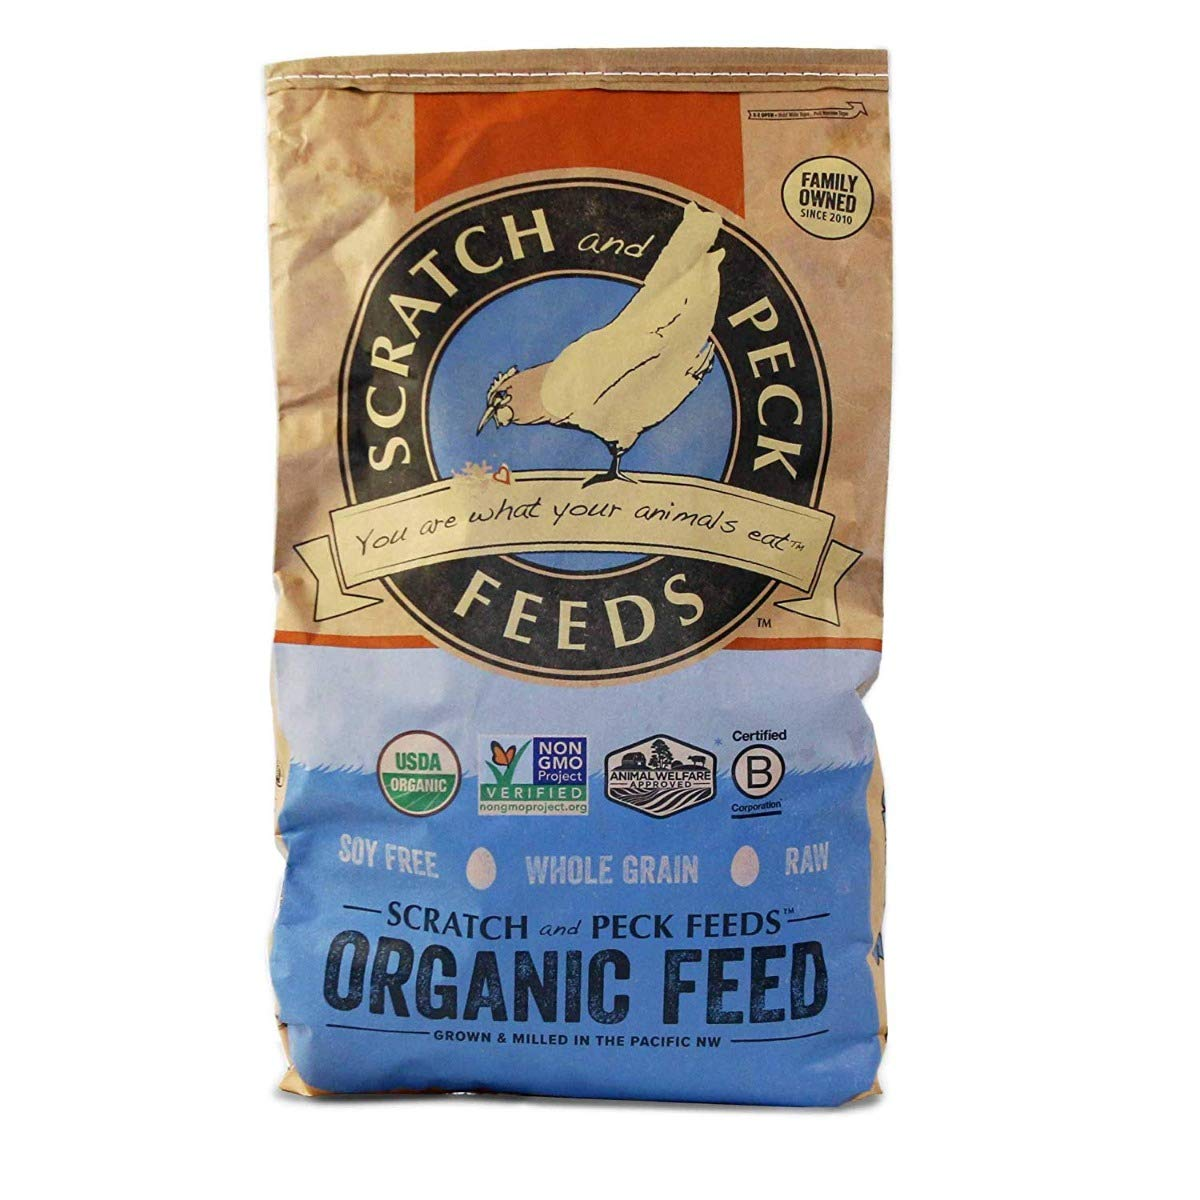 Naturally Free Organic Layer Feed for Chickens and Ducks - 18% Protein - 40-lbs - Non-GMO Project Verified, Soy Free and Corn Free - Scratch and Peck Feeds by SCRATCH AND PECK FEEDS YOU ARE WHAT YOUR ANIMALS EAT